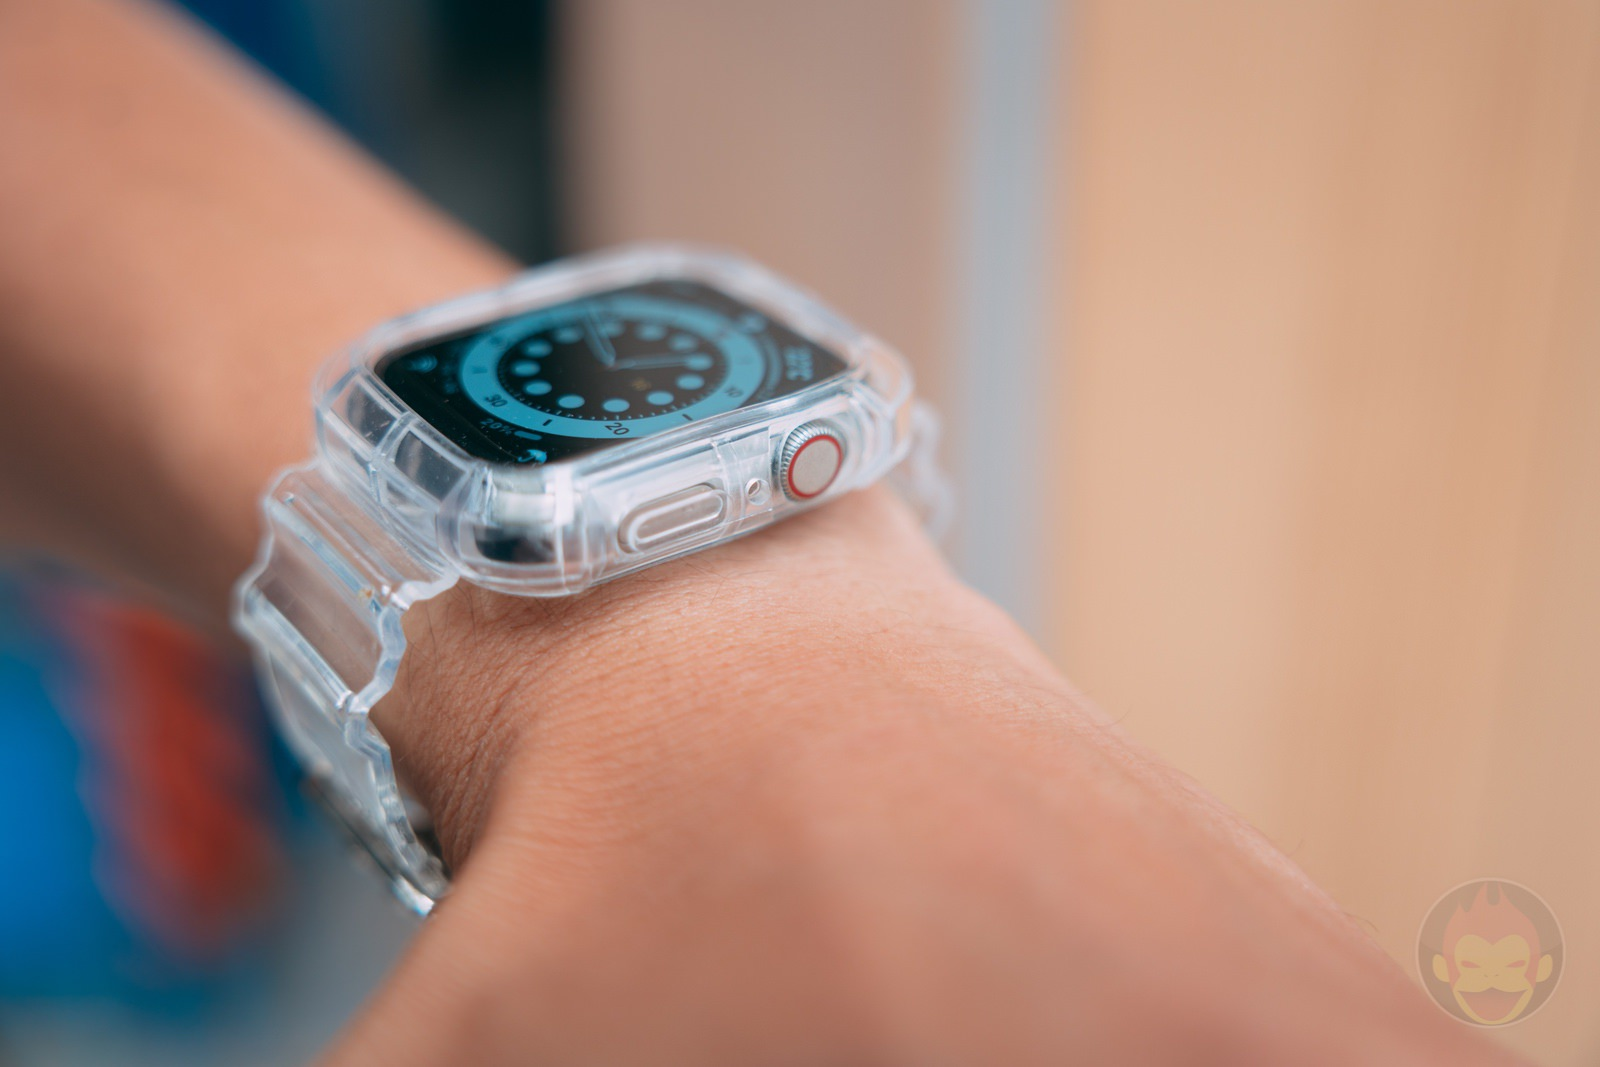 NAKOP-iWatch-Clear-Band-Review-06.jpg